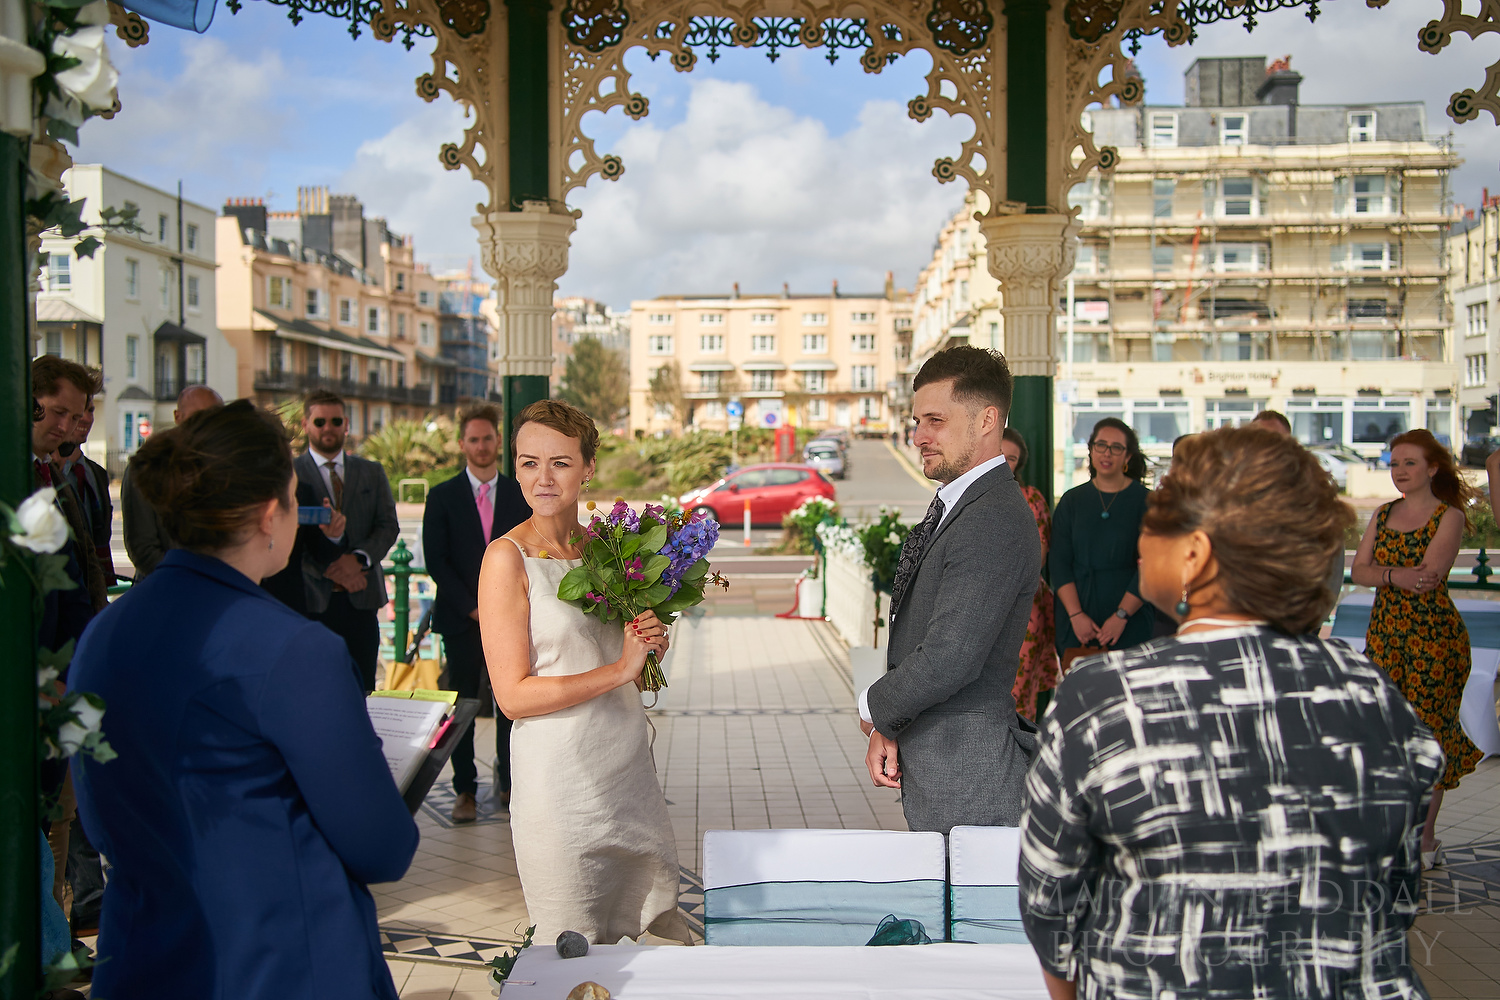 Wedding in Brighton bandstand